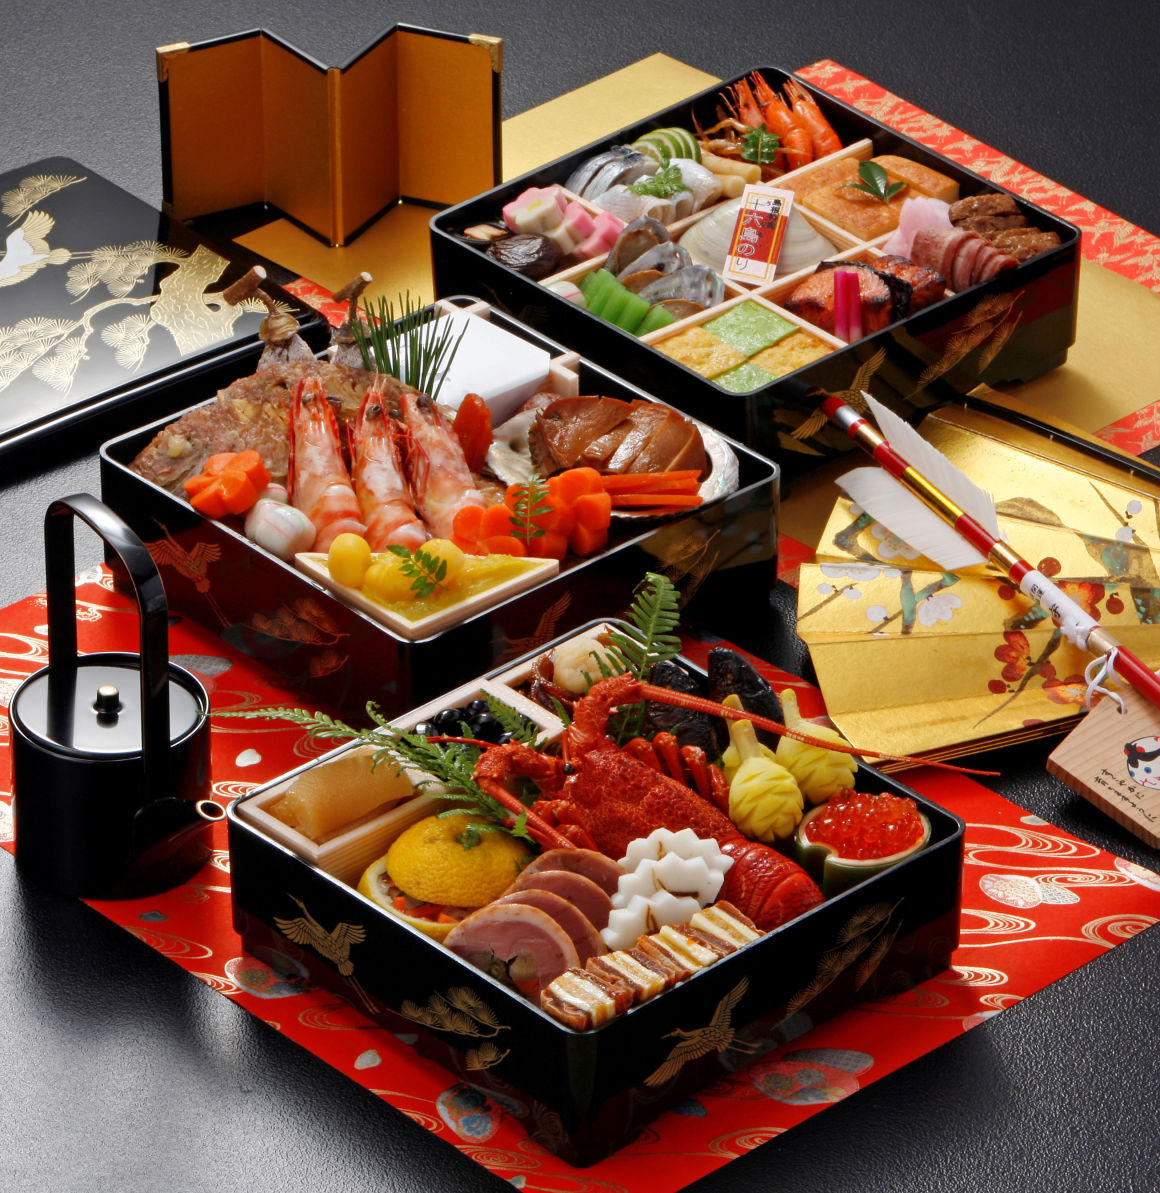 Oh no, osechi! Why don't young people in Japan like eating